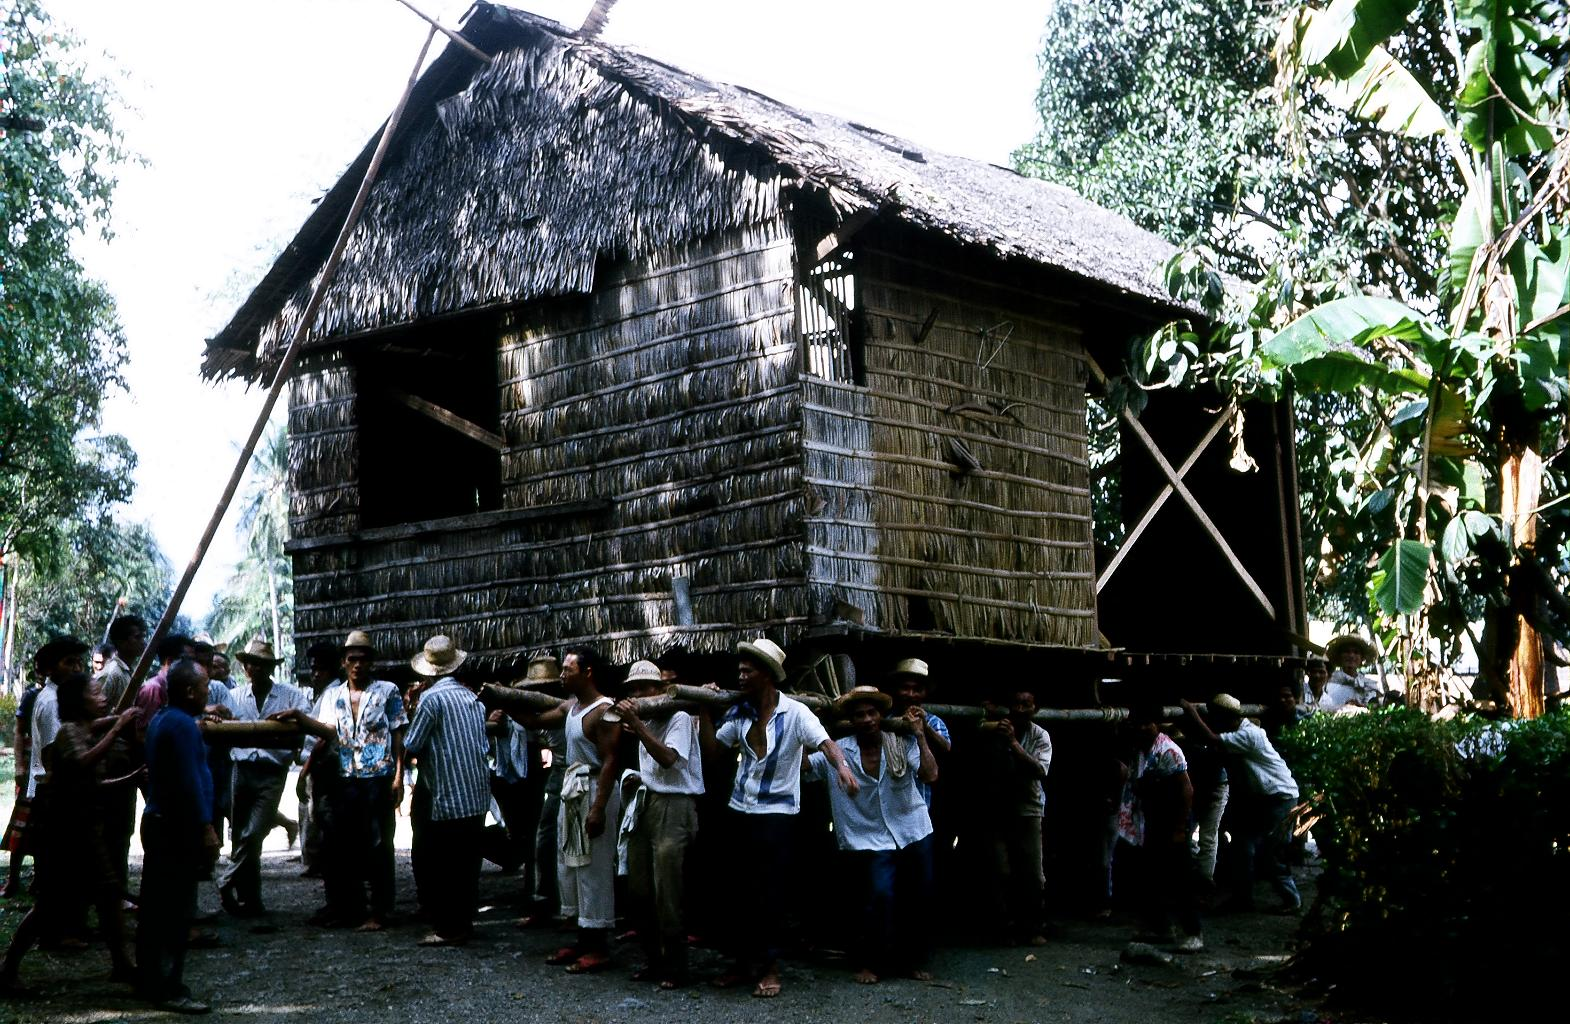 A Typical Bayanihan exercised at the school